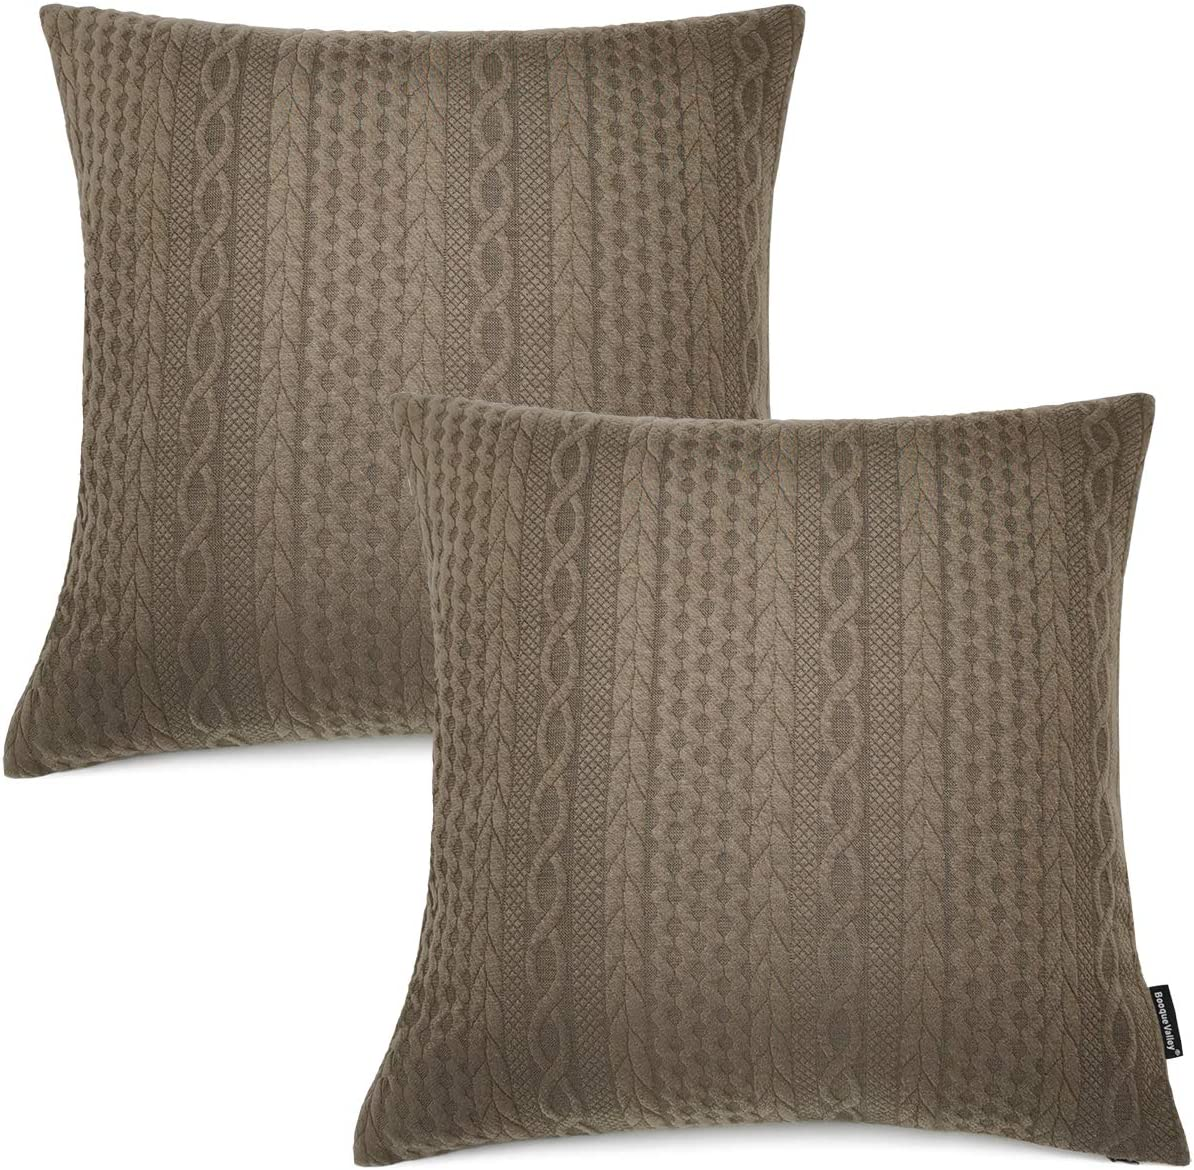 Booque Valley Throw Pillow Covers, Pack of 2 Super Soft Elegant Modern Embossed Patterned Coffee Cushion Covers Decorative Stretchy Pillow Cases for Sofa Bed Car Chair, 18 x 18 inch(Brown)